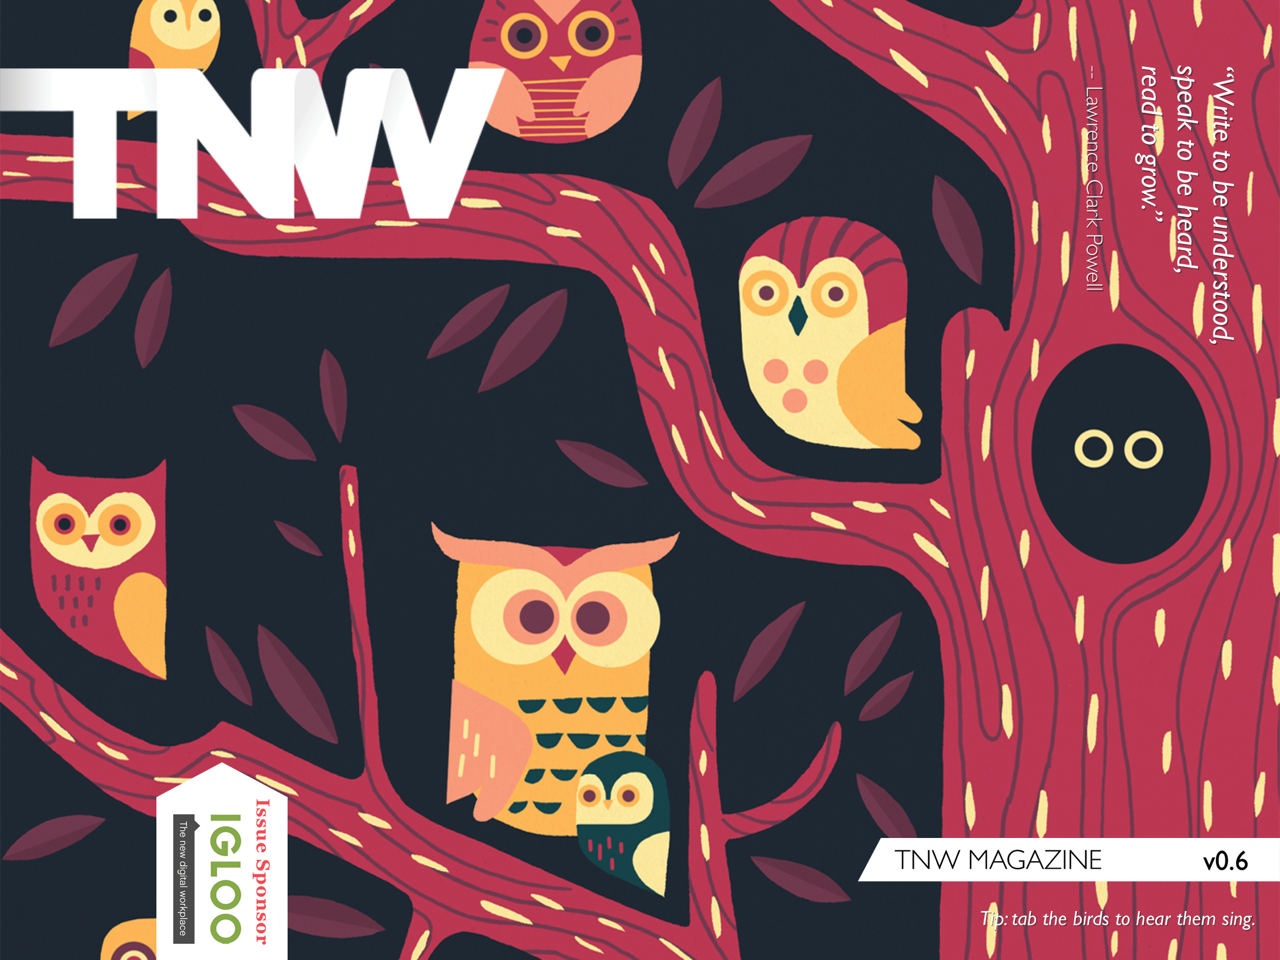 TNWMagazine Download TNW Magazine v0.6: The Future of Communication